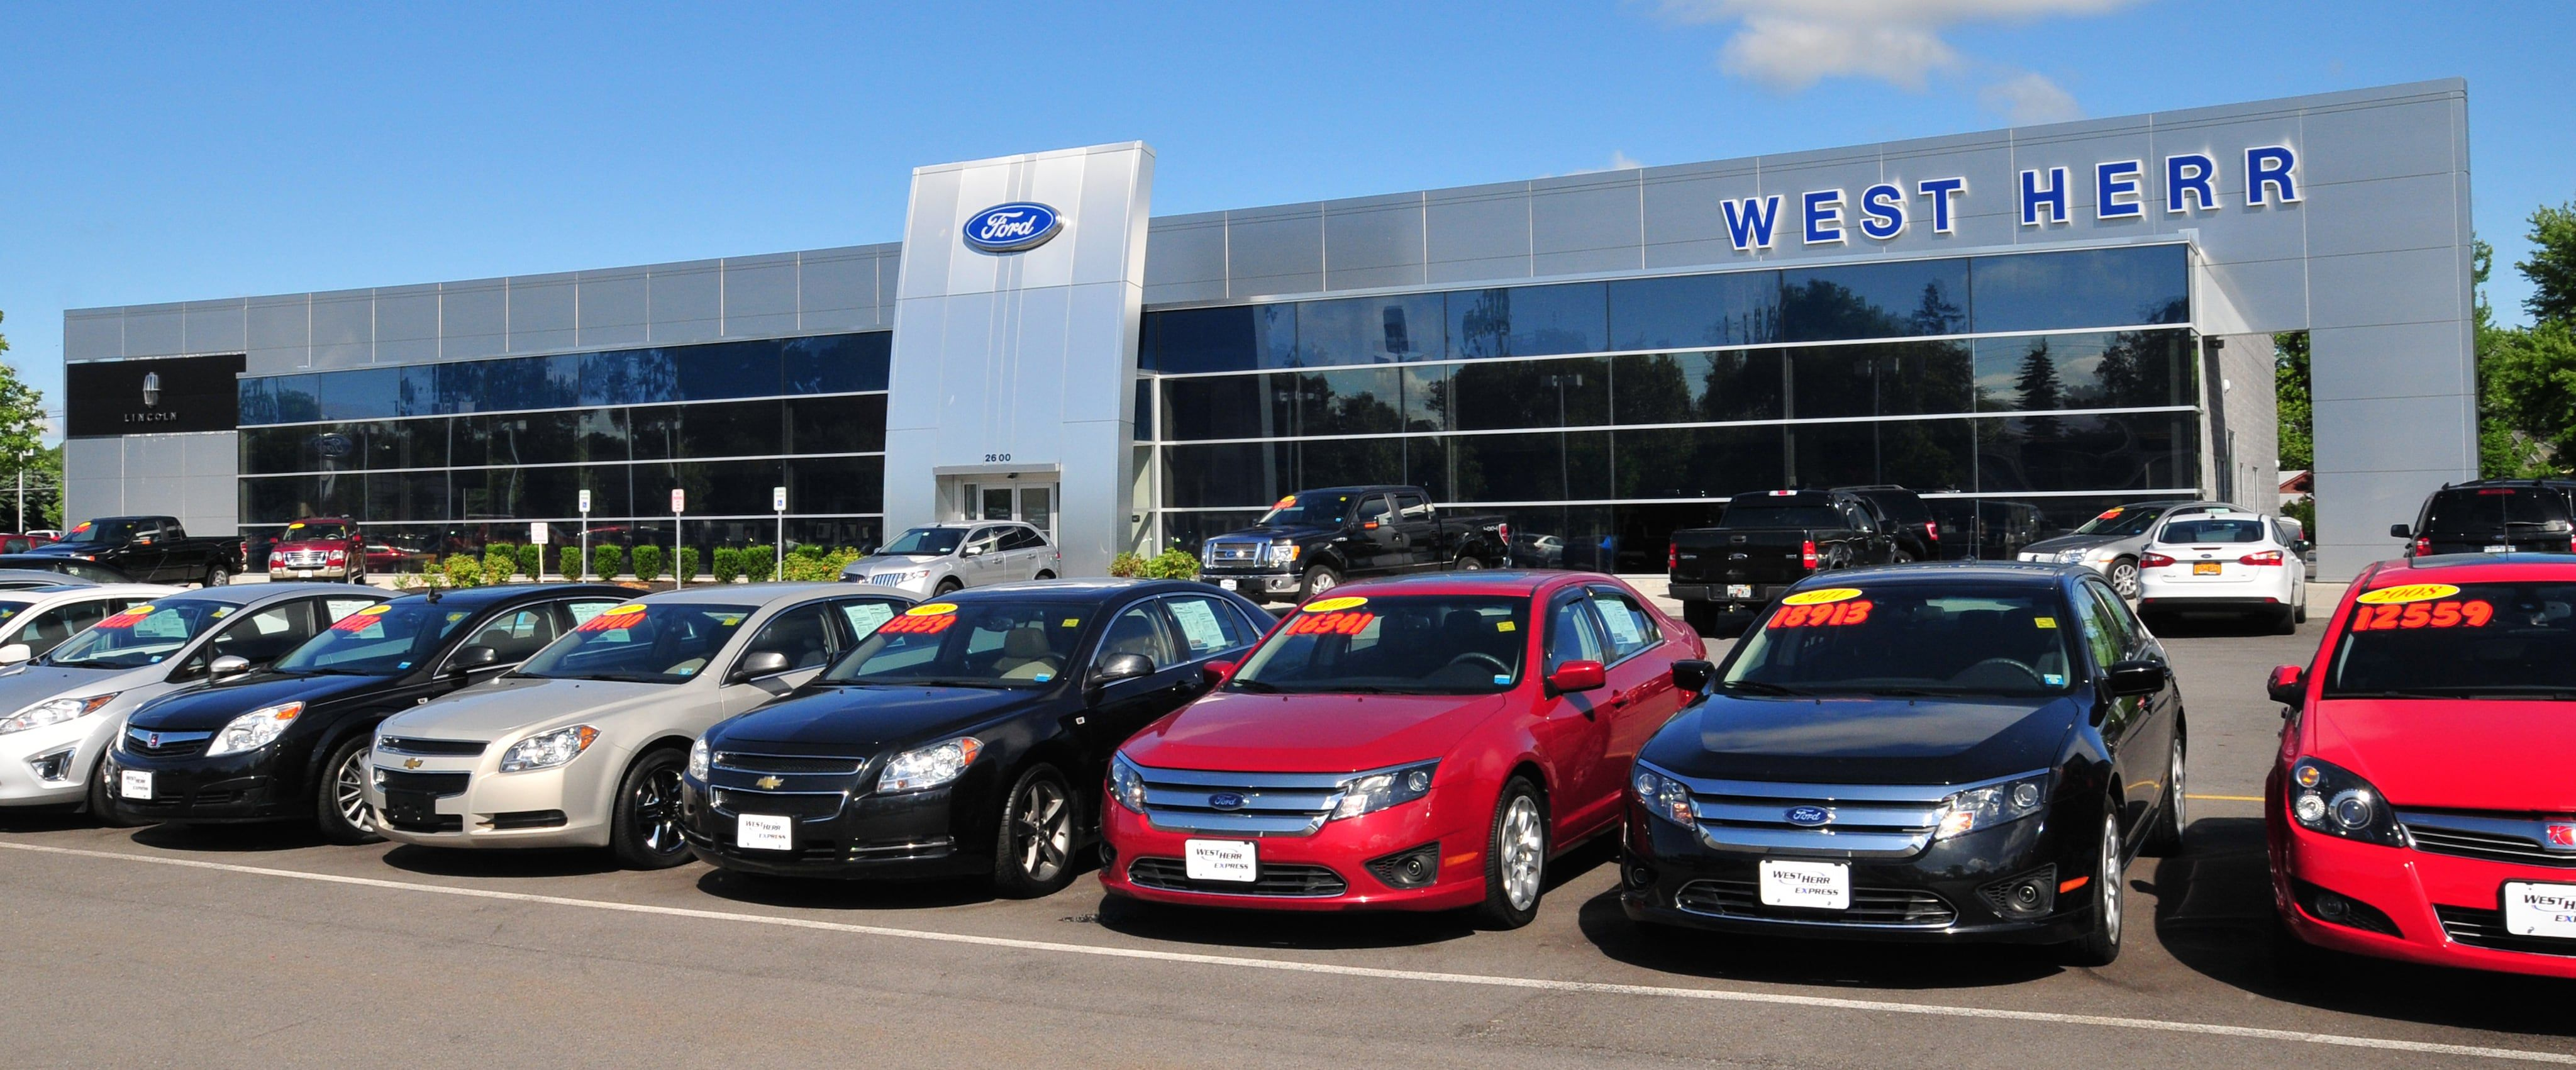 West Herr Used Cars >> West Herr Buffalo Ny Used Car Dealer Rochester Used Autos